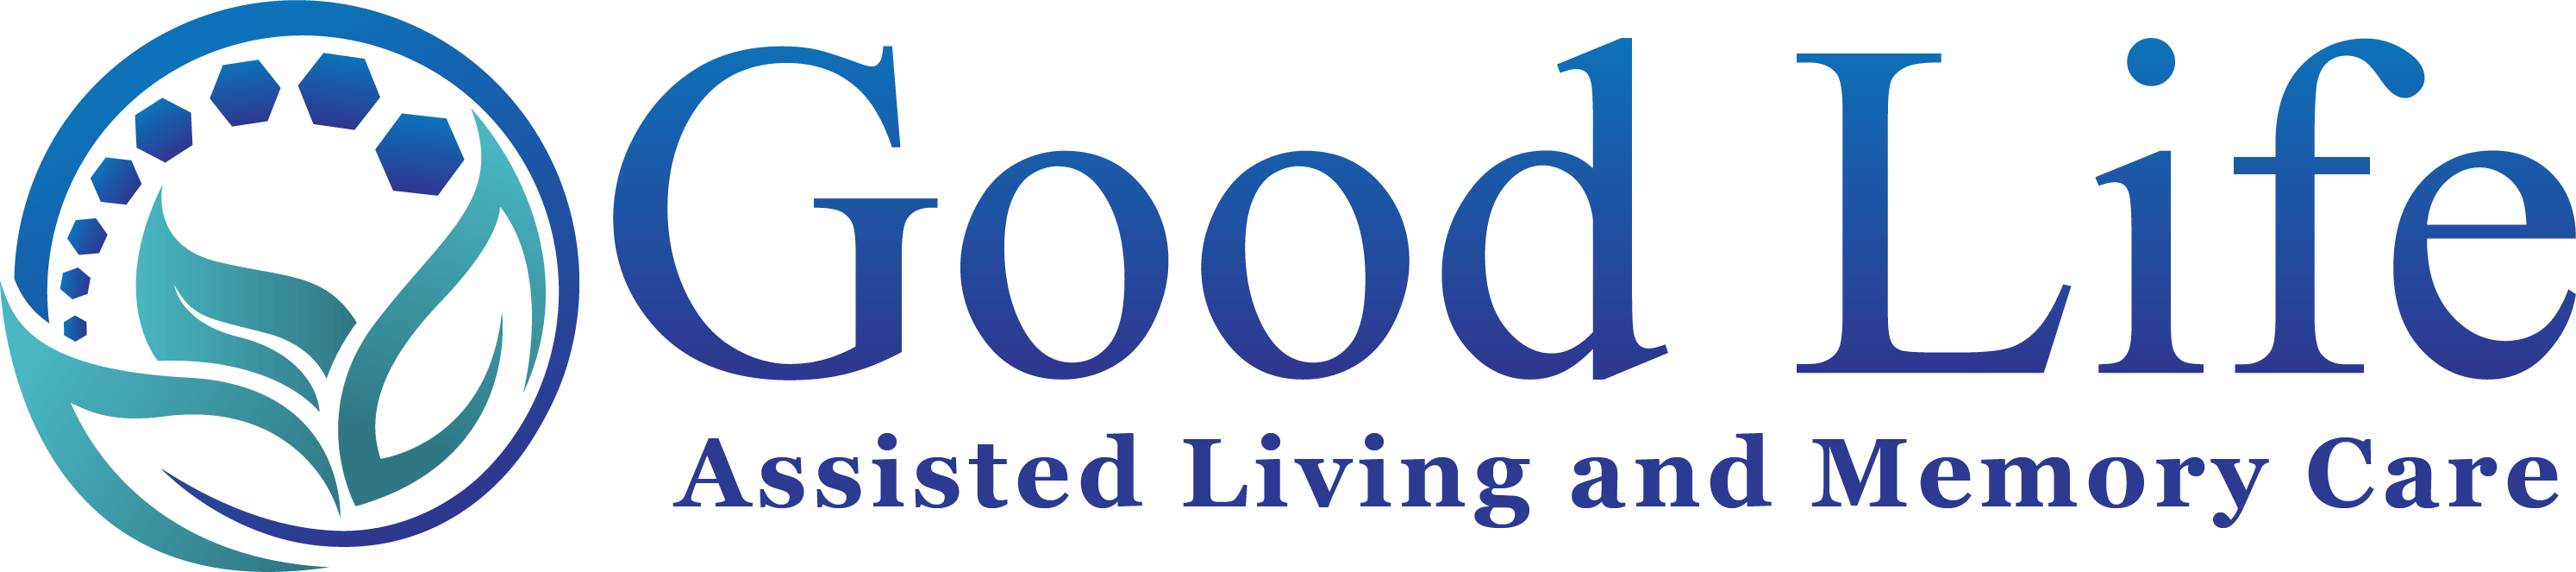 Good Life Assisted Living and Memory Care